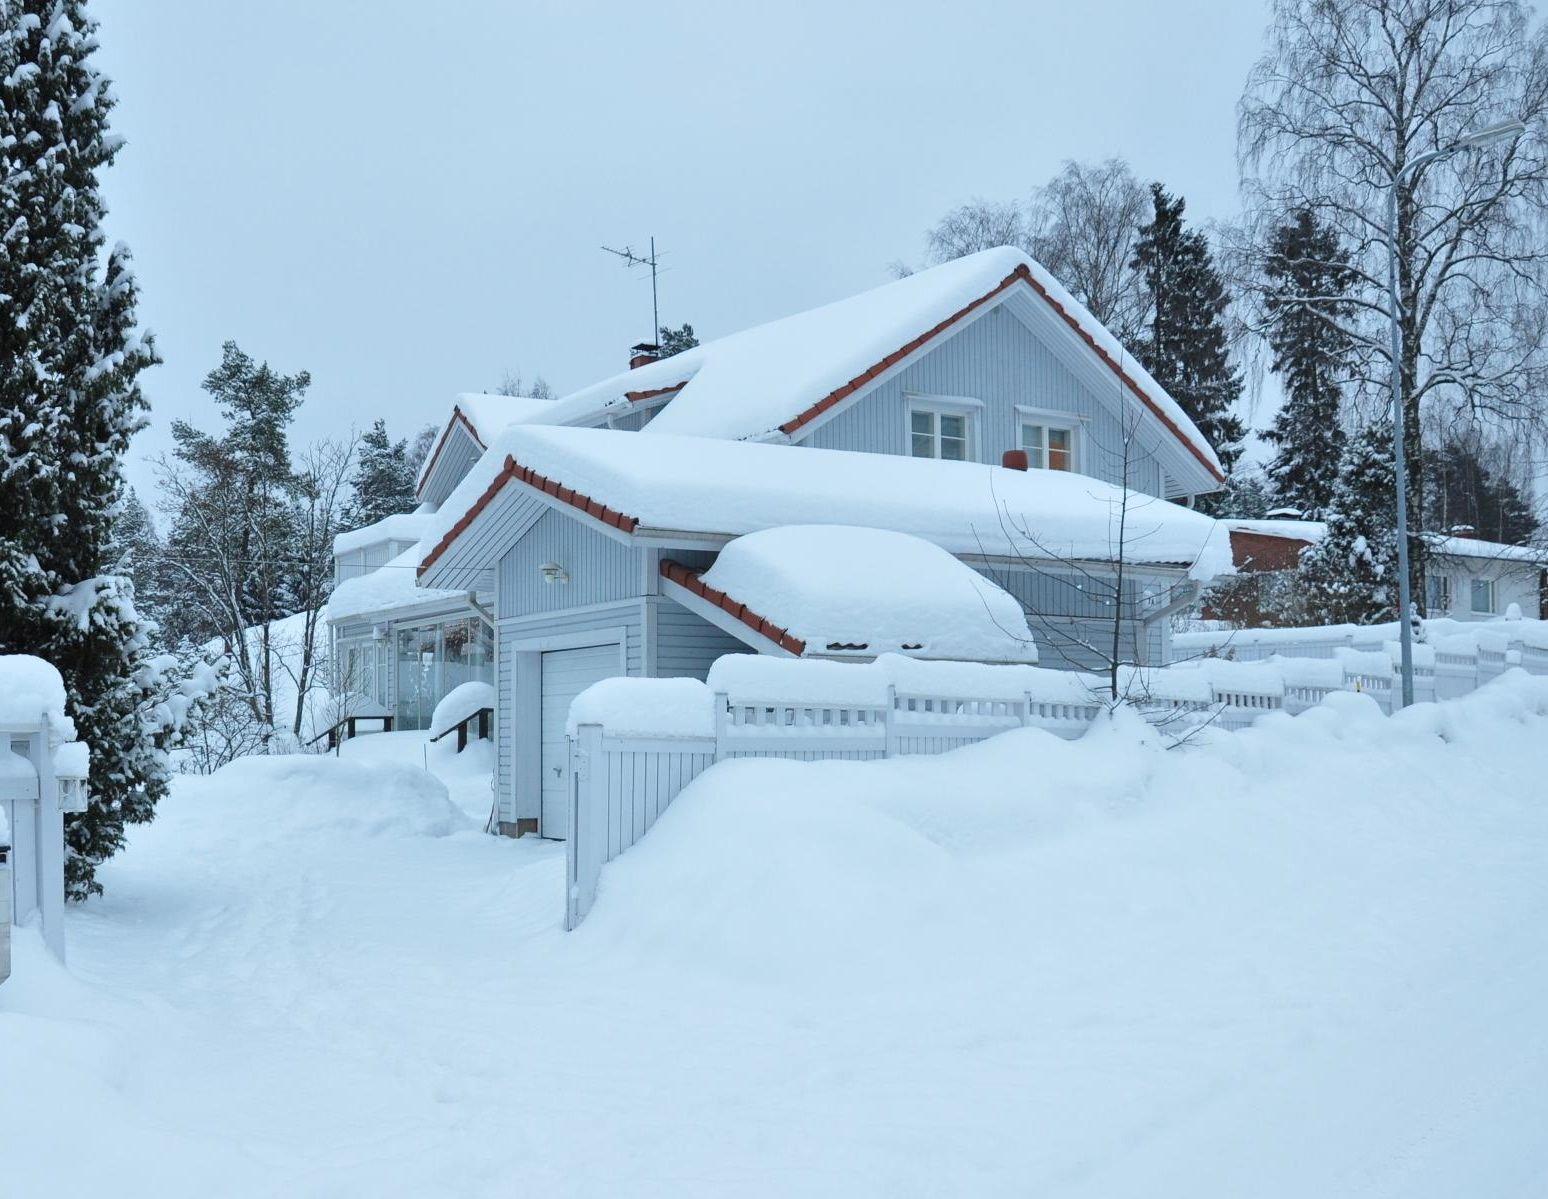 See how the snow sits on houses ... just like giant slabs of pavlova!